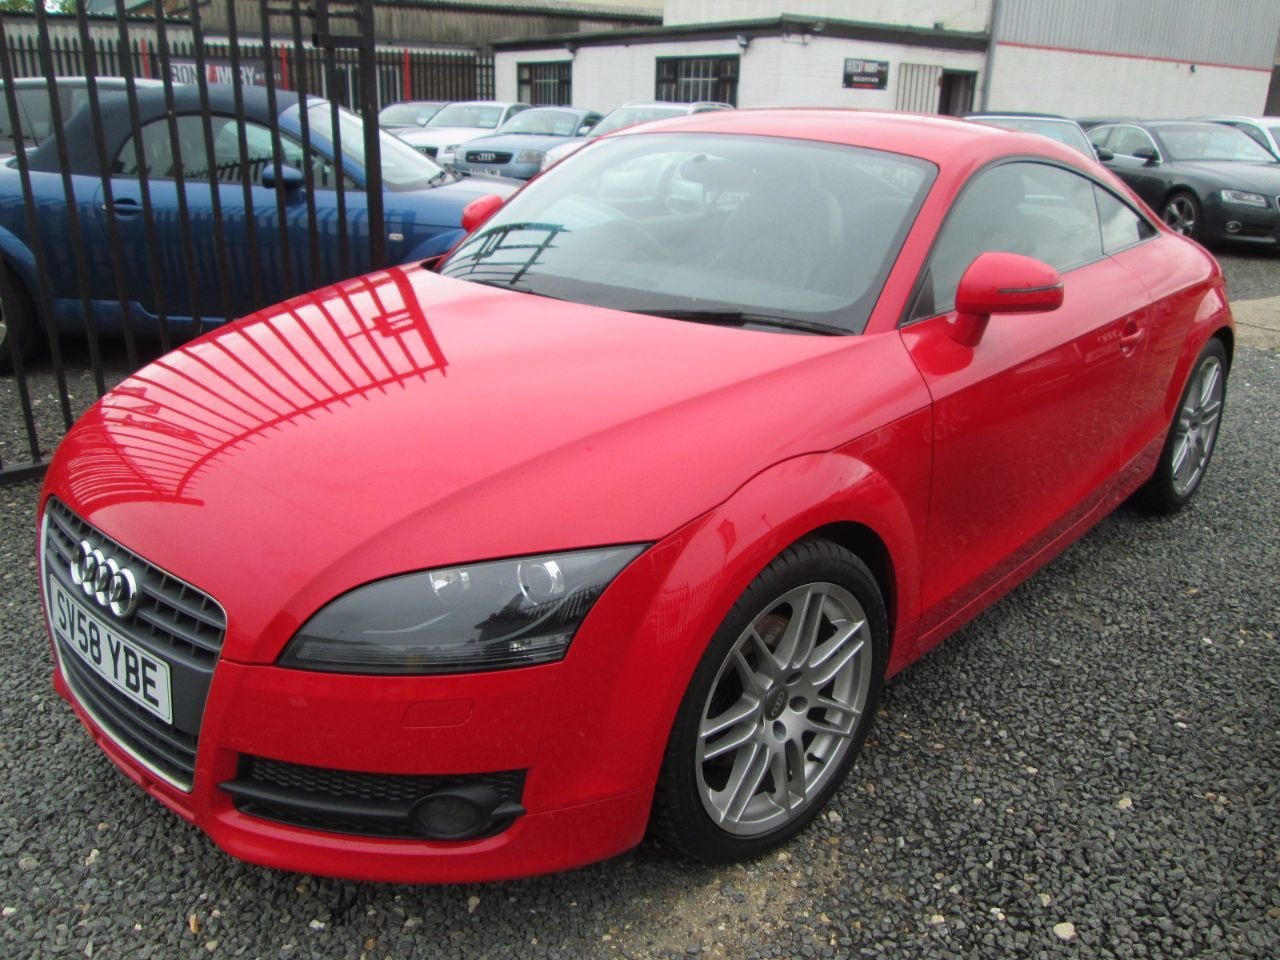 used audi tt and second hand audi tt in scunthorpe. Black Bedroom Furniture Sets. Home Design Ideas